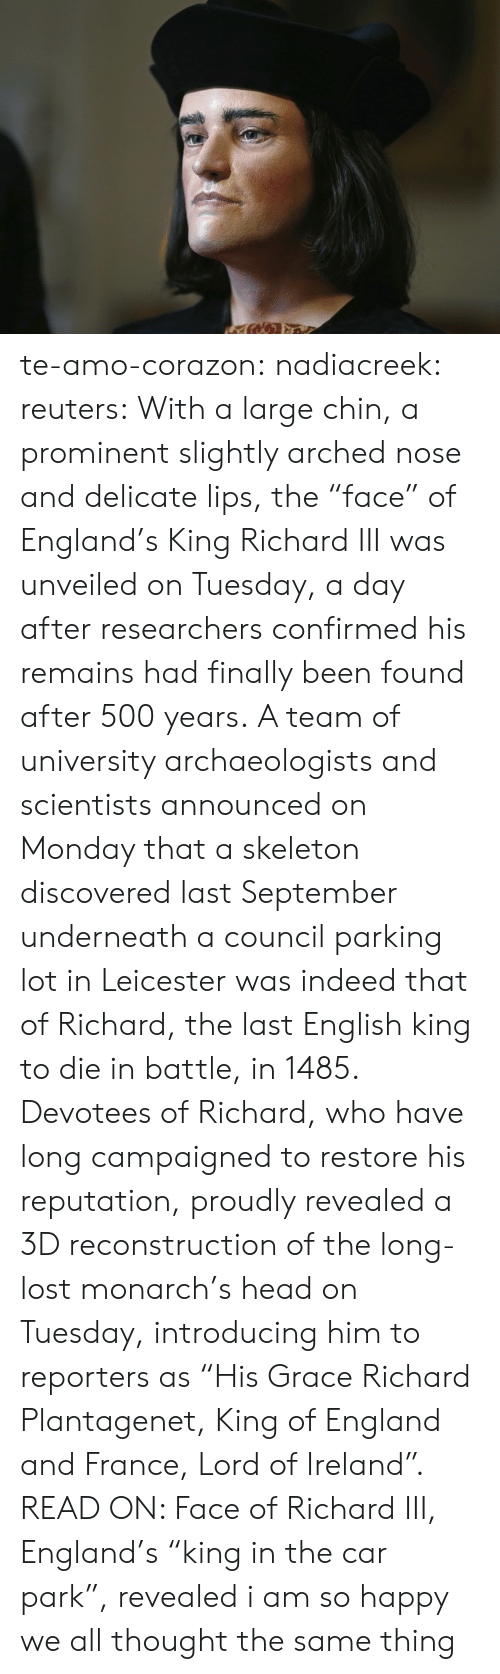 "Reuters: te-amo-corazon: nadiacreek:  reuters:  With a large chin, a prominent slightly arched nose and delicate lips, the ""face"" of England's King Richard III was unveiled on Tuesday, a day after researchers confirmed his remains had finally been found after 500 years. A team of university archaeologists and scientists announced on Monday that a skeleton discovered last September underneath a council parking lot in Leicester was indeed that of Richard, the last English king to die in battle, in 1485. Devotees of Richard, who have long campaigned to restore his reputation, proudly revealed a 3D reconstruction of the long-lost monarch's head on Tuesday, introducing him to reporters as ""His Grace Richard Plantagenet, King of England and France, Lord of Ireland"". READ ON: Face of Richard III, England's ""king in the car park"", revealed     i am so happy we all thought the same thing"